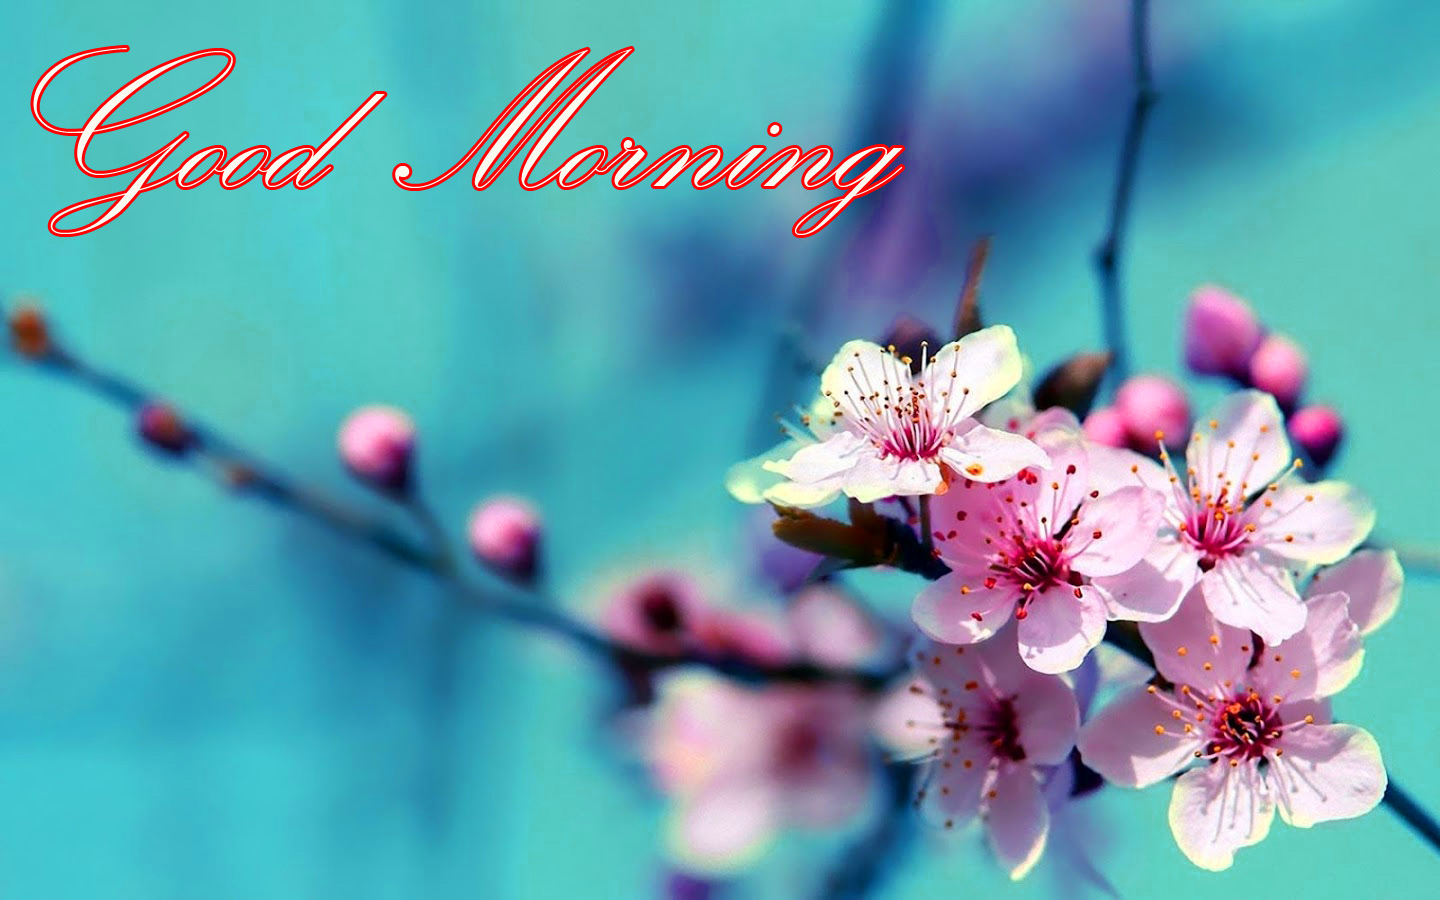 Good Morning Images Wallpaper pics With Nature HD Download